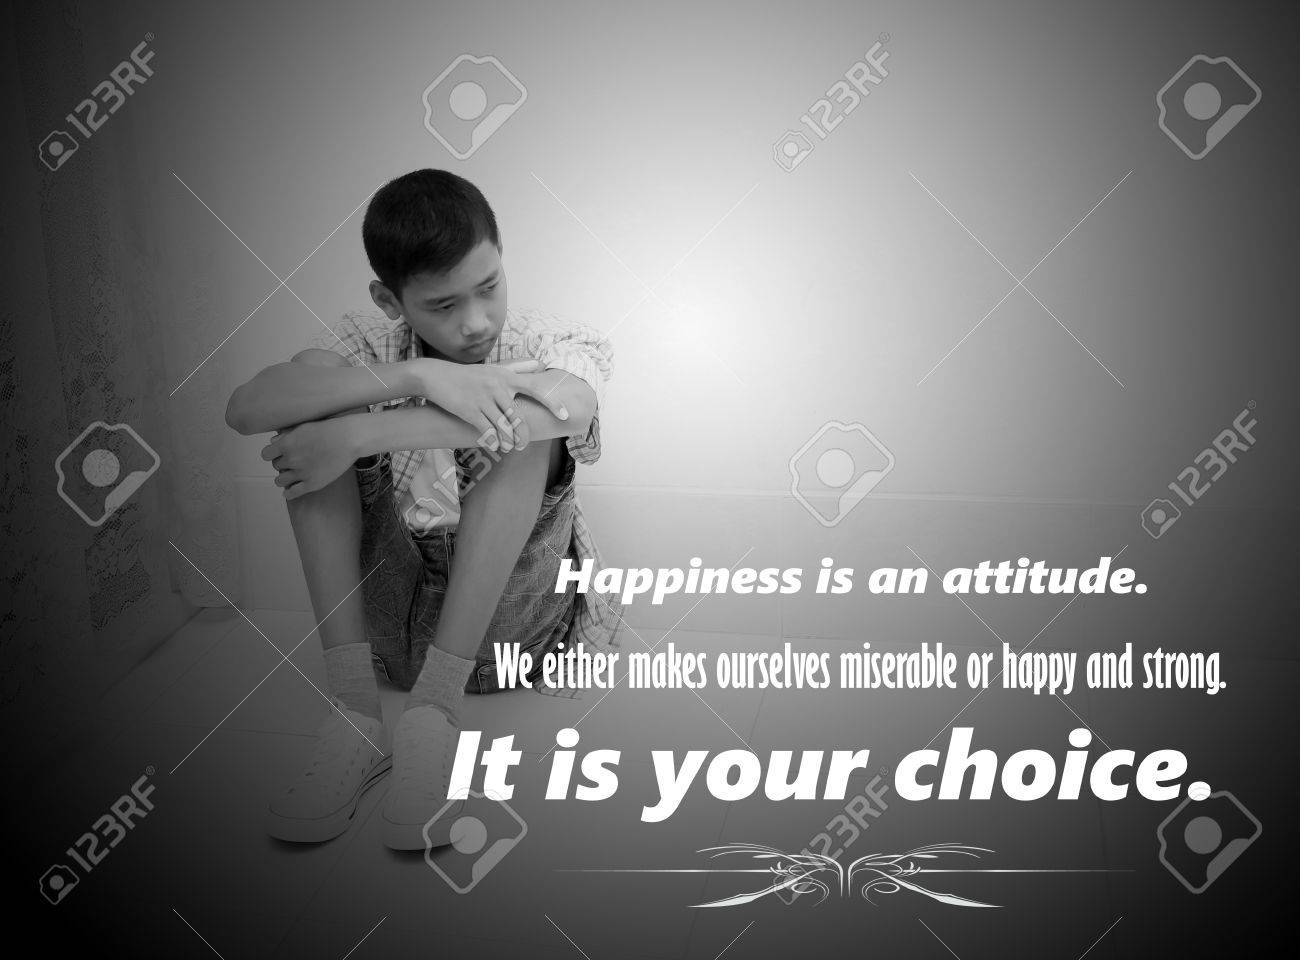 Inspirational quotes for life in boy sad blurred black and white background stock photo